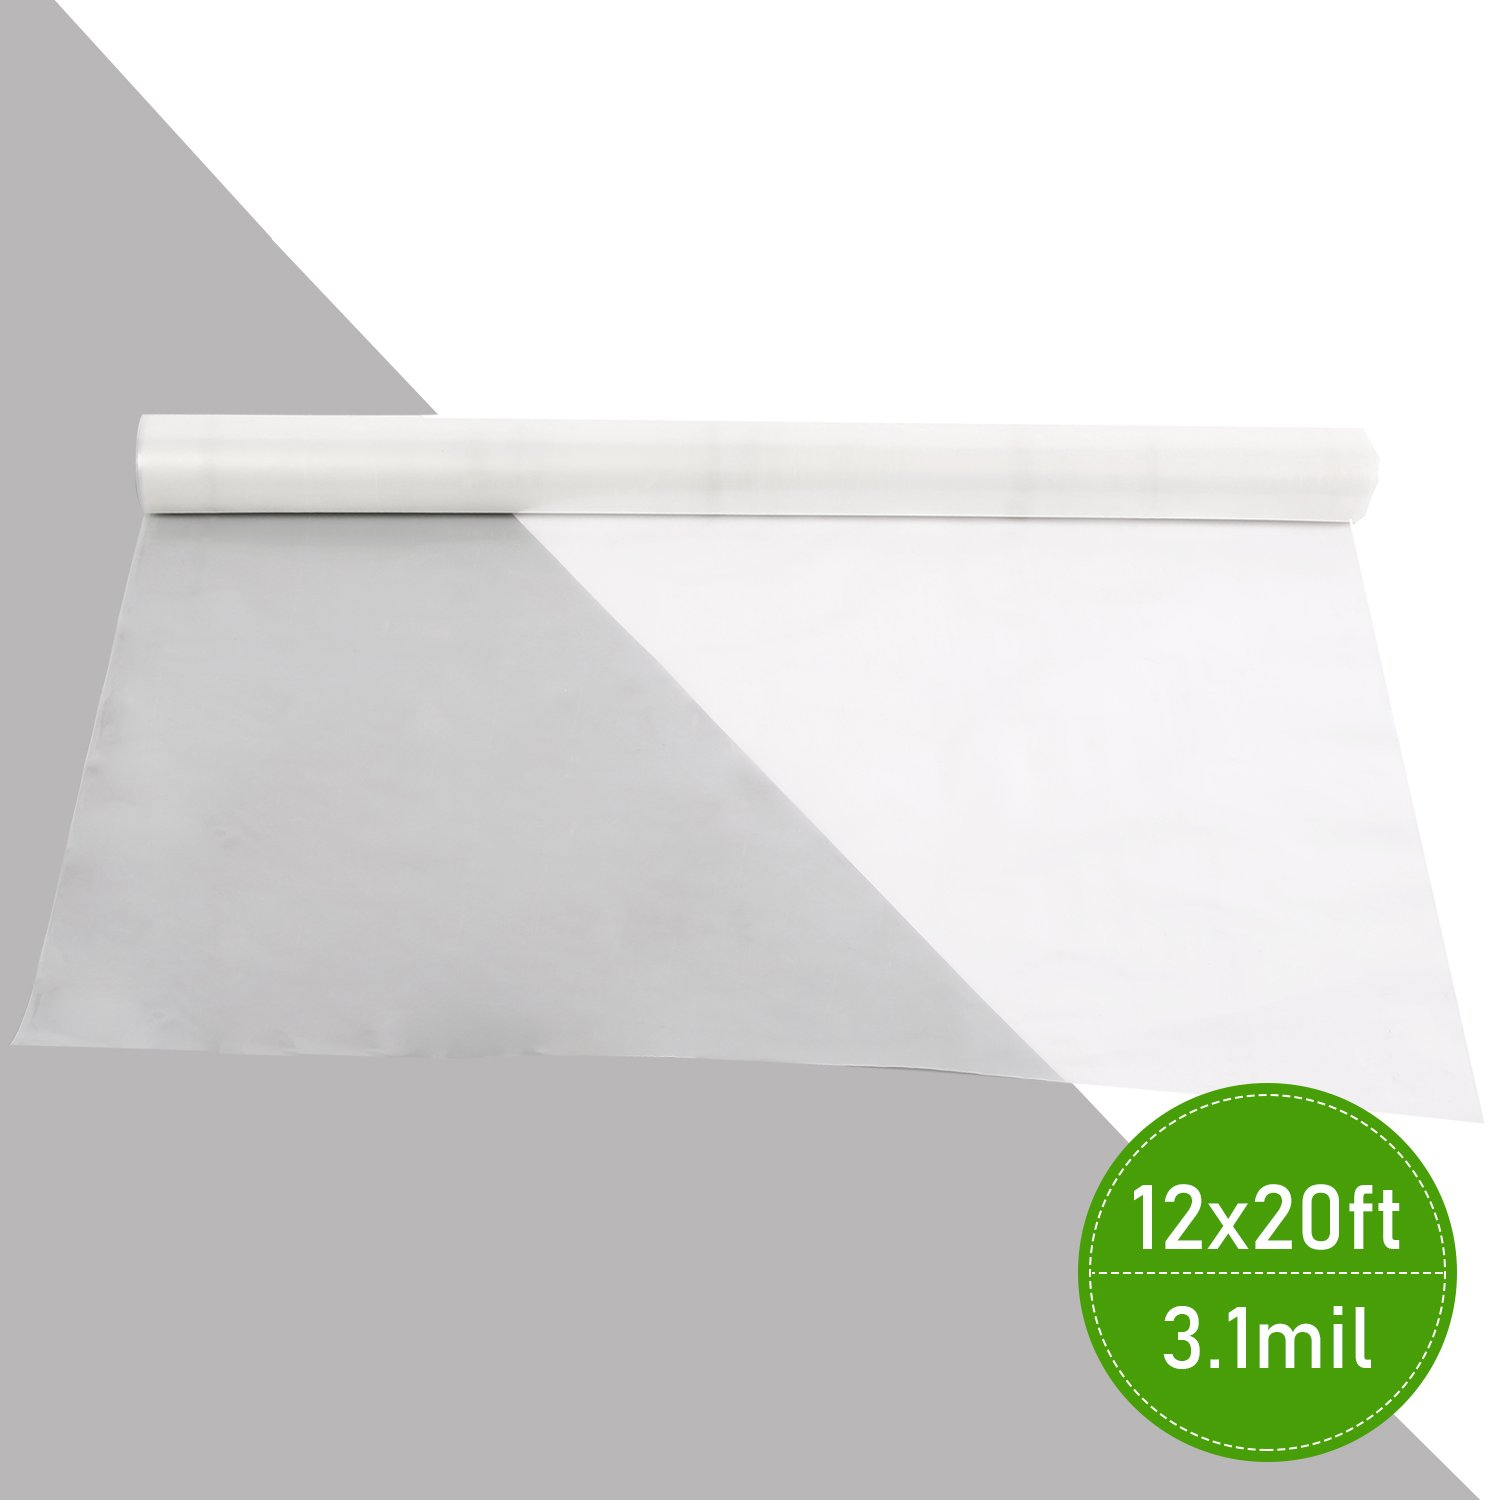 Agfabric 3.1Mil Plastic Covering Clear Polyethylene Greenhouse Film UV Resistant for Grow Tunnel and Garden Hoop, Plant Cover&Frost Blanket for Season Extension, 12x20ft by Agfabric (Image #4)